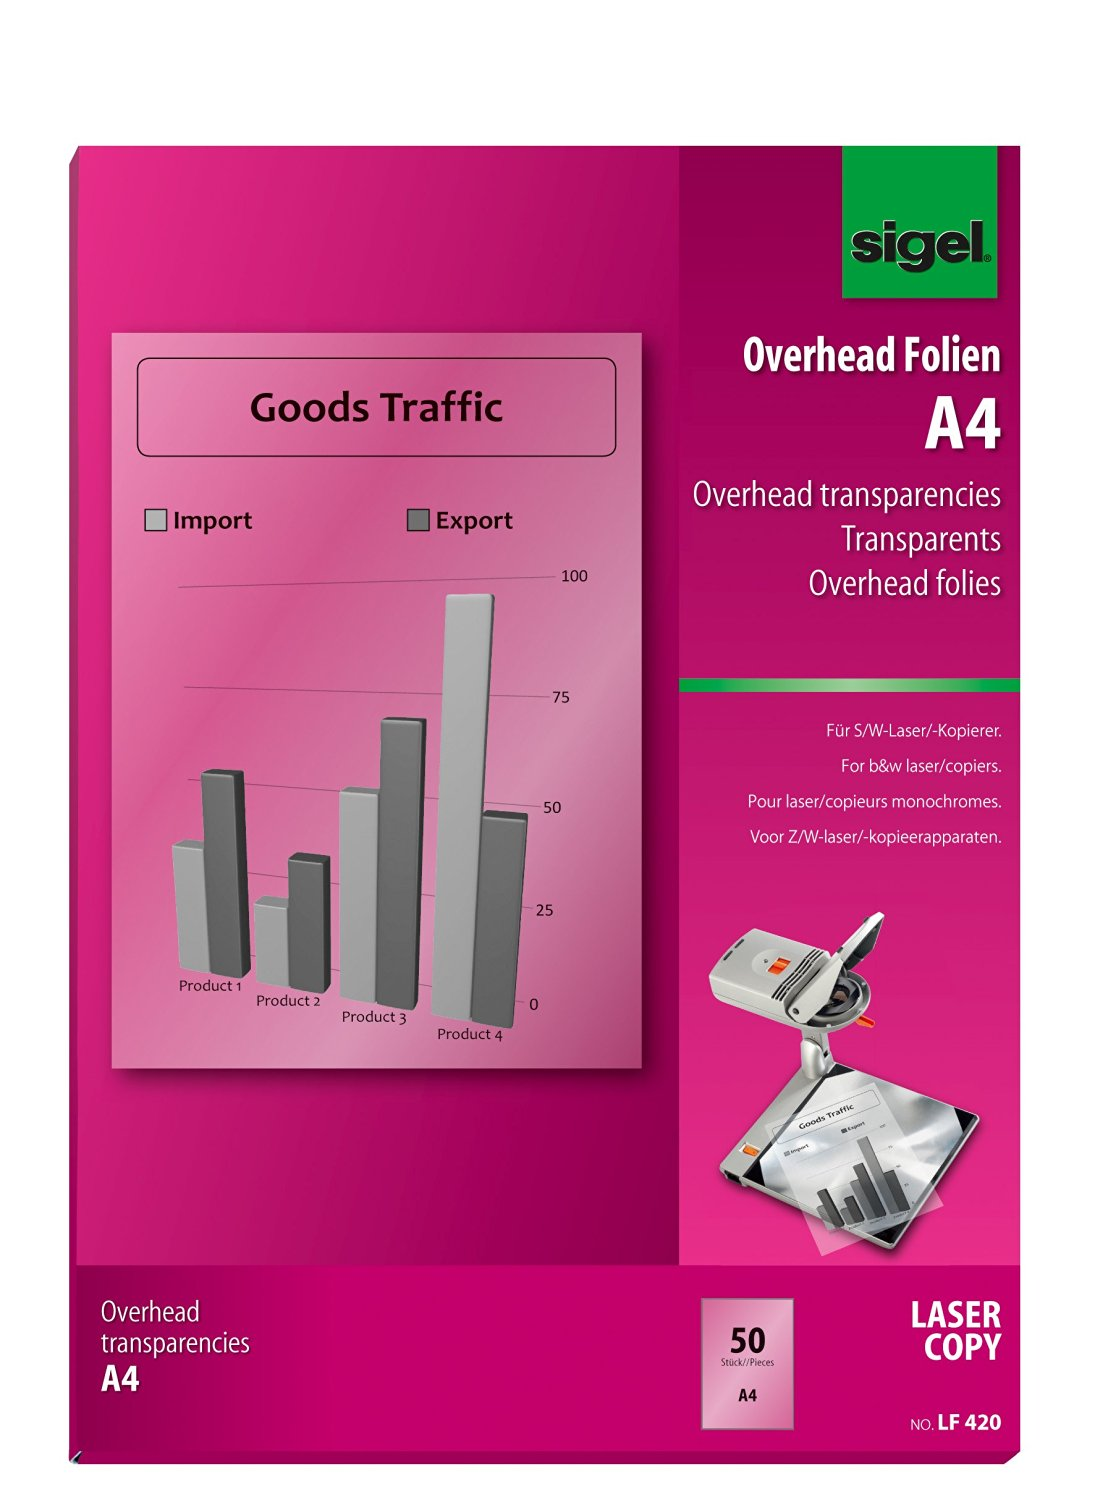 Sigel LF420 Transparency Film for Laser/Copier B&W, clear, 100 mic, A4, 50 sheets